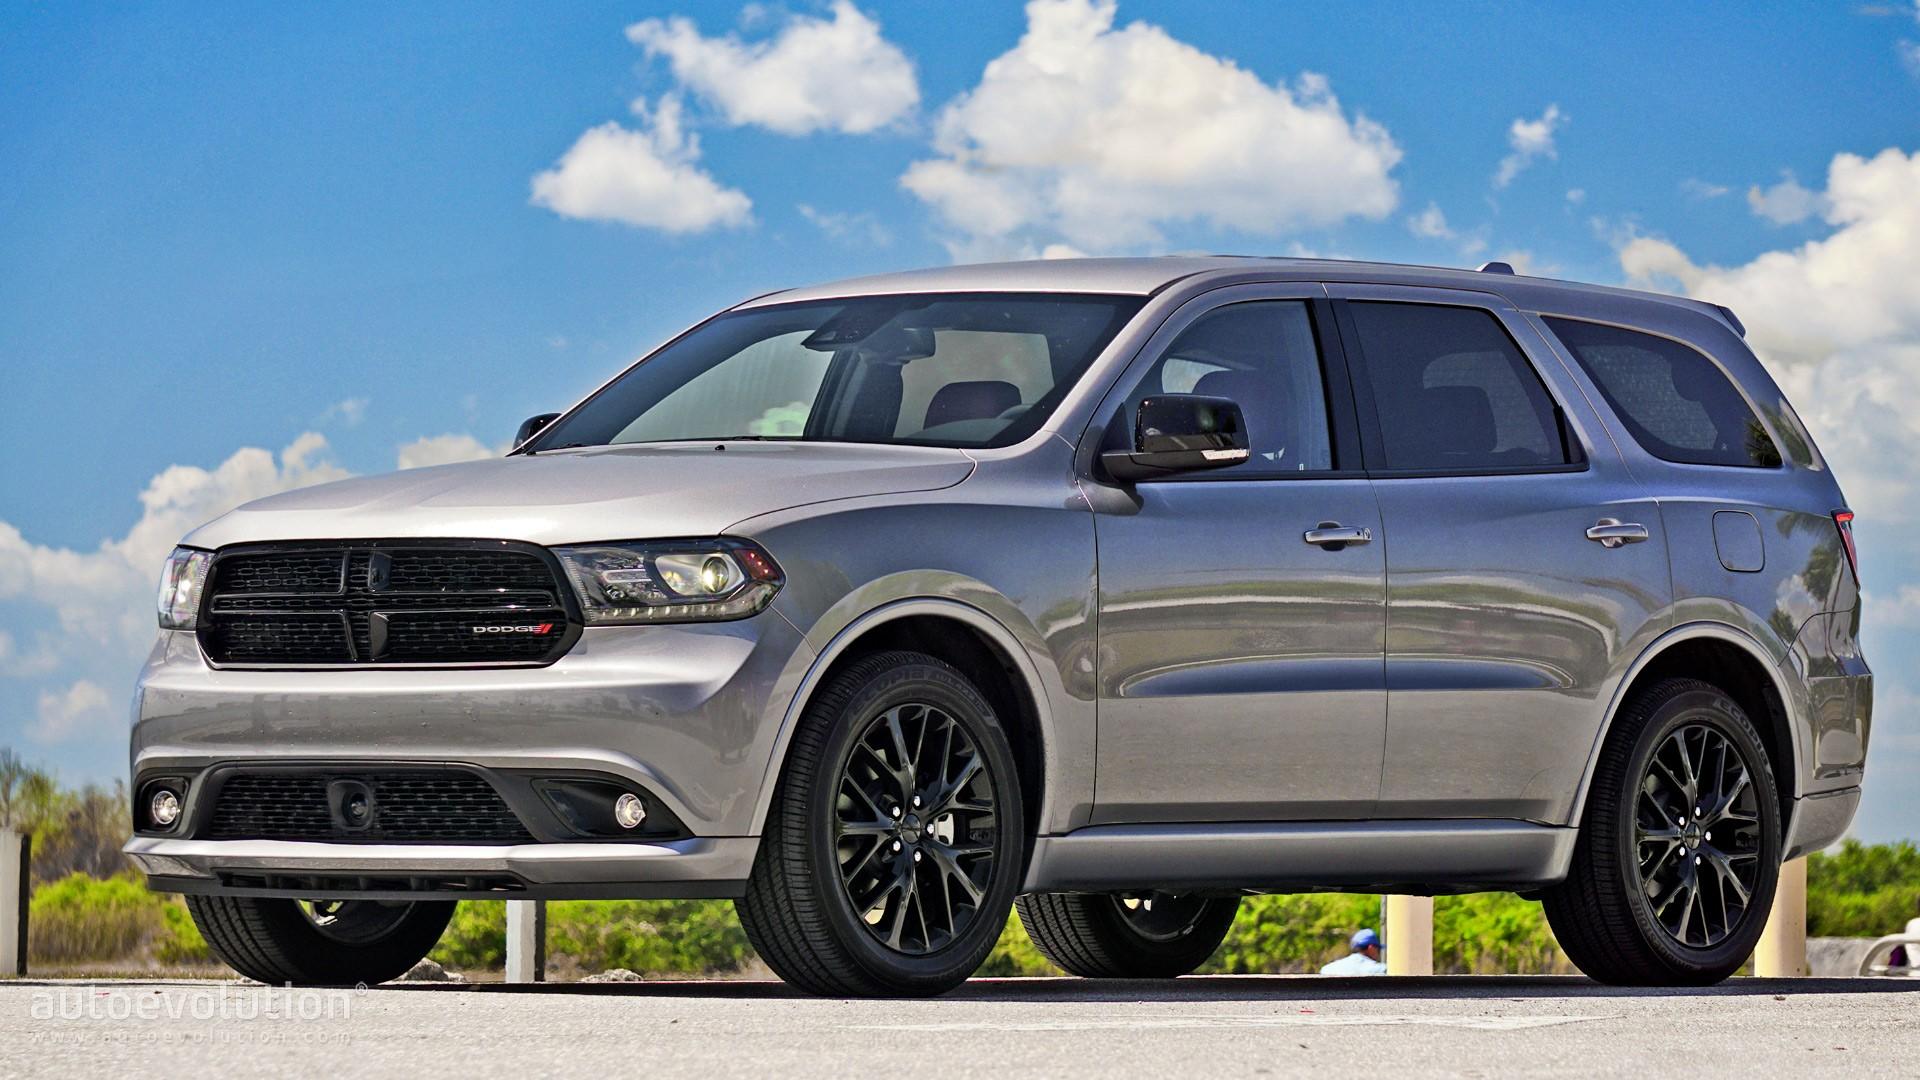 driven 2016 dodge durango r t autoevolution. Black Bedroom Furniture Sets. Home Design Ideas